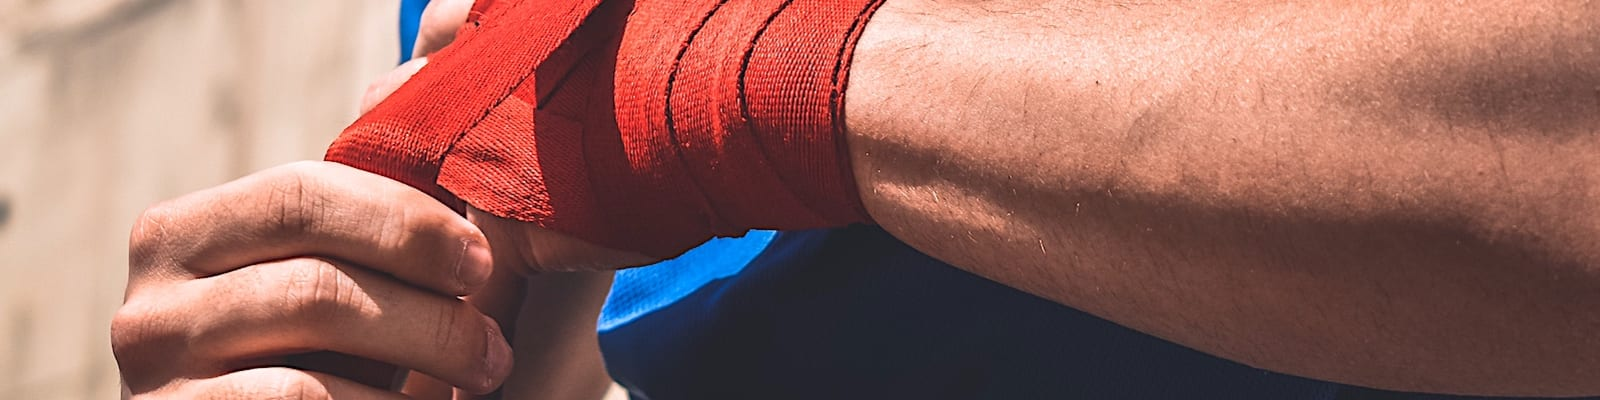 Man hold arm with red bandage on it